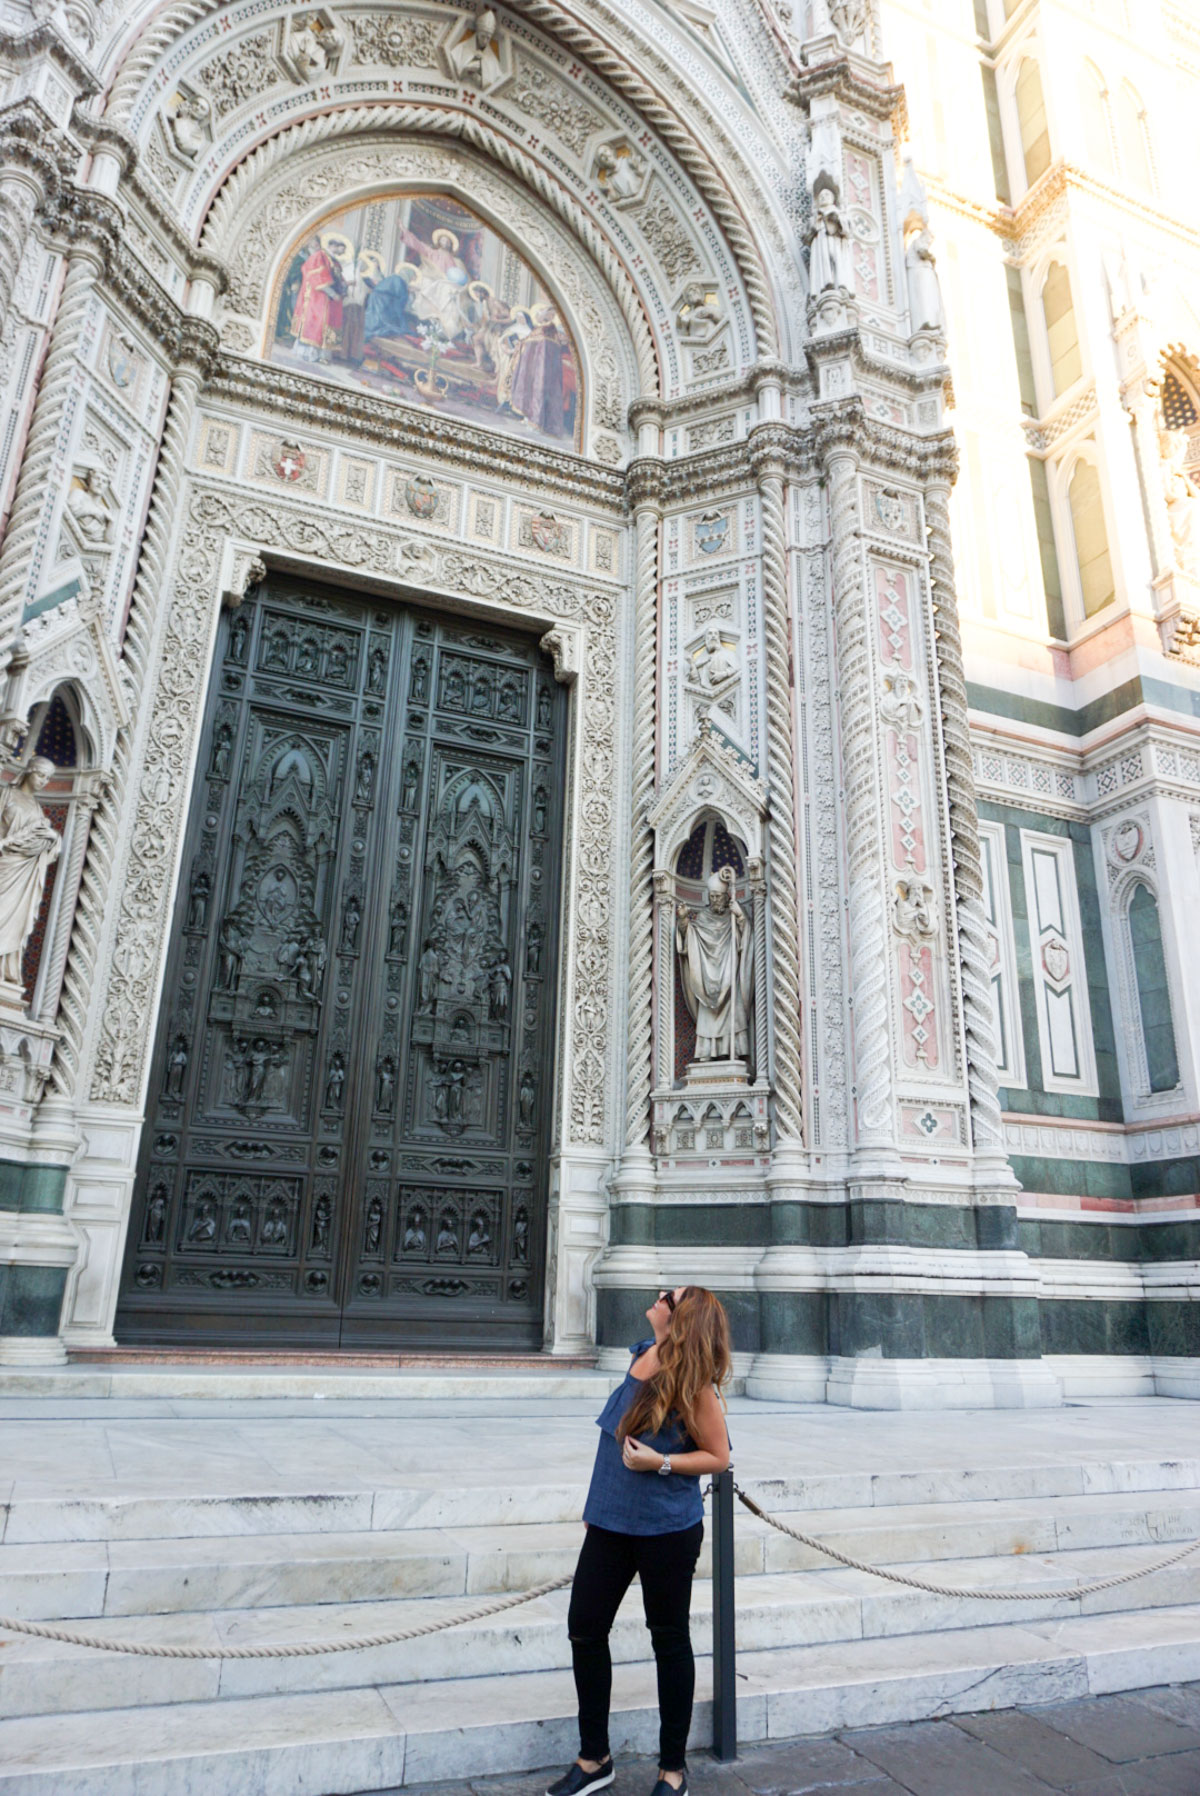 The Duomo, The Cathedral of Santa Maria del Fiore in Florence, Italy